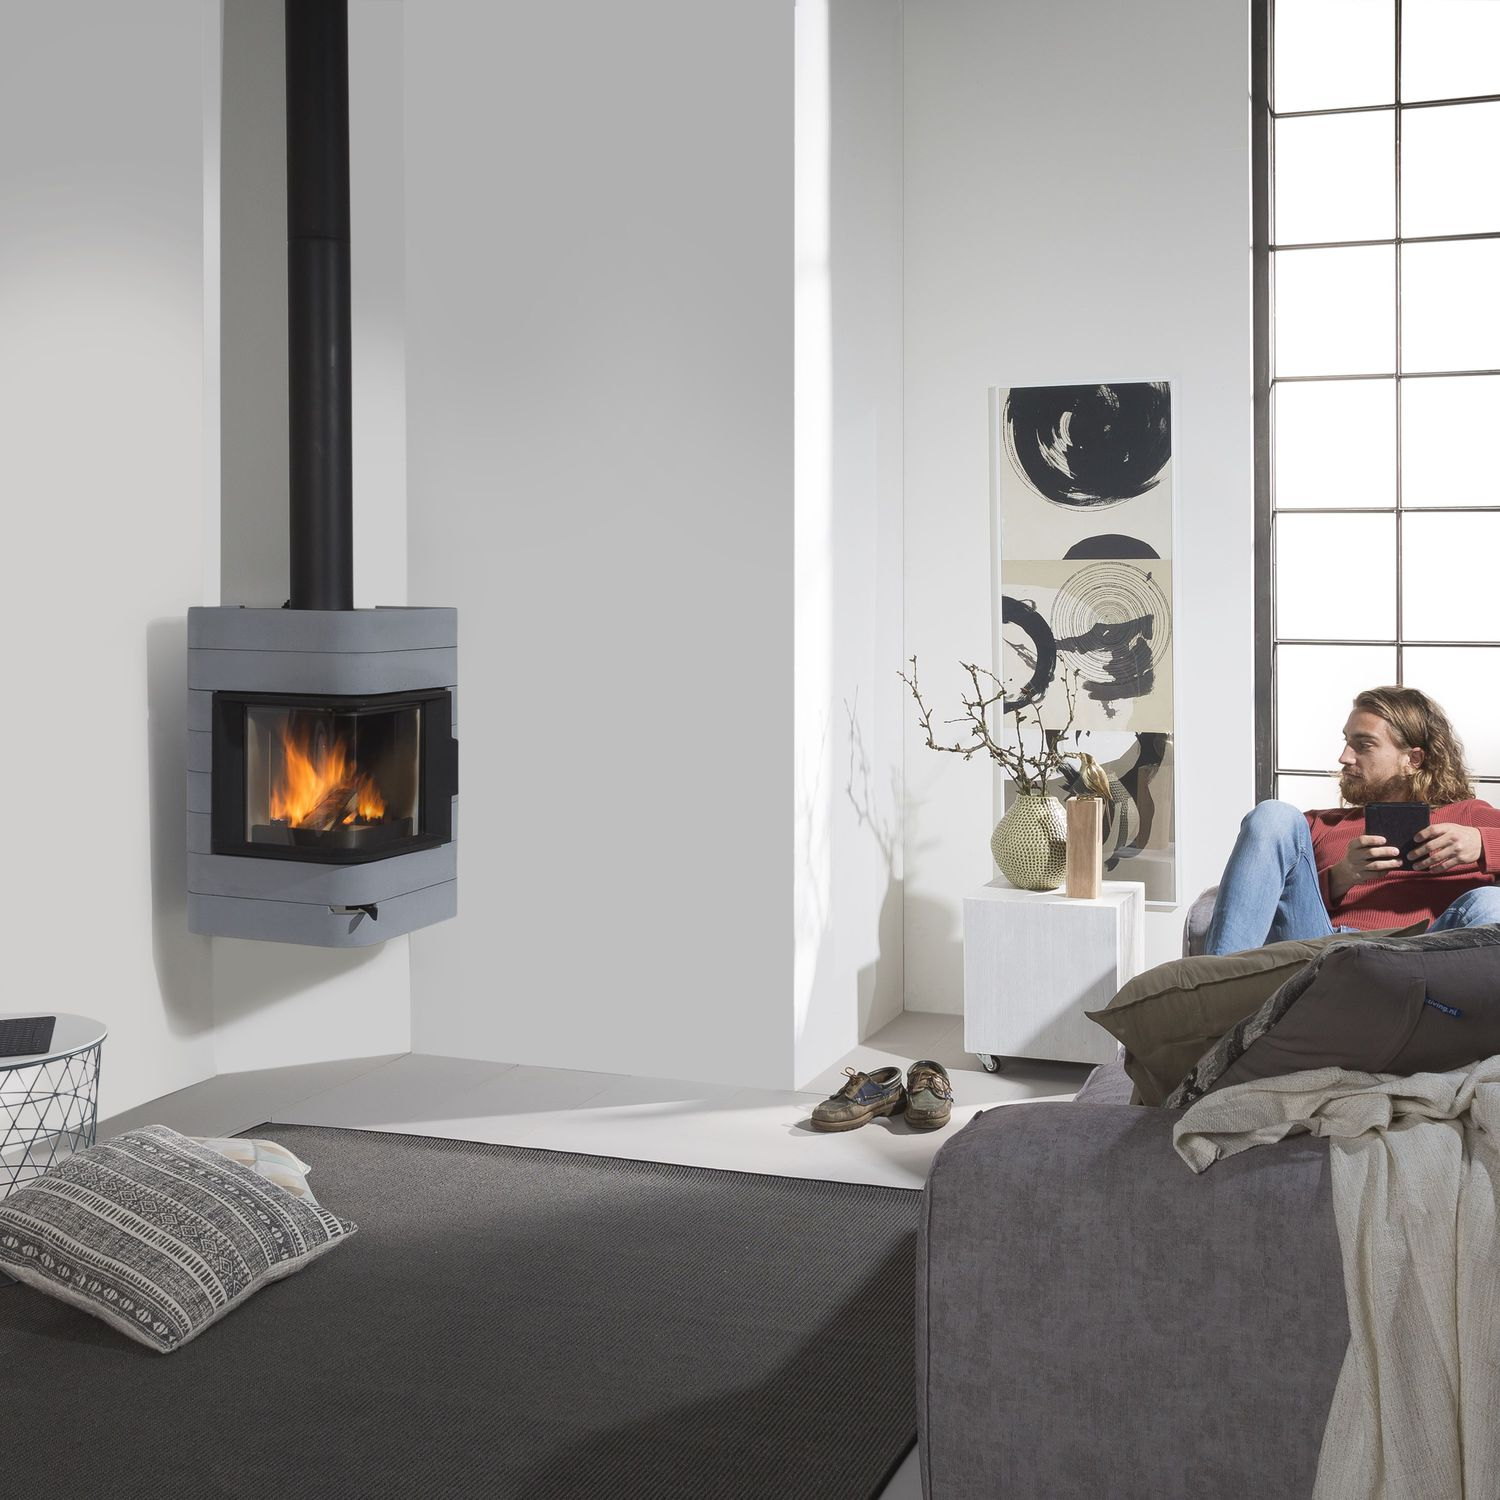 Wood heating stove / contemporary / steel / concrete